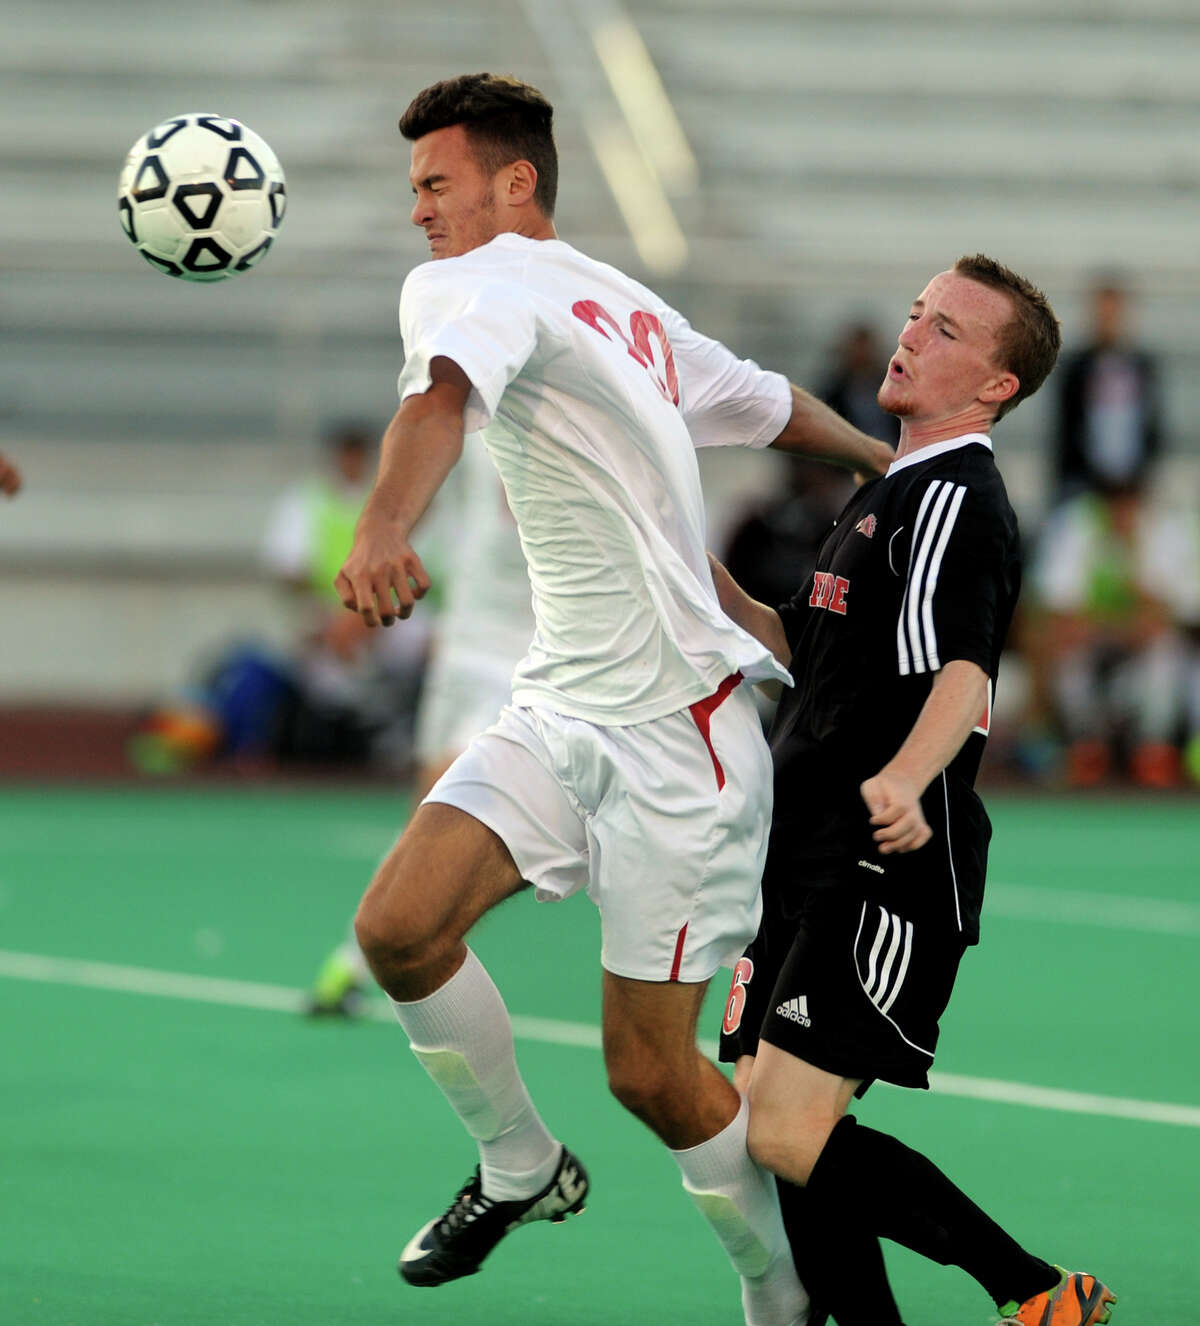 Central's Michele Muhaj heads the ball, during boys soccer action against Fairfield Warde in Bridgeport, Conn. on Wednesday September 18, 2013. At right is Fairfield Warde's Jack Anderson.